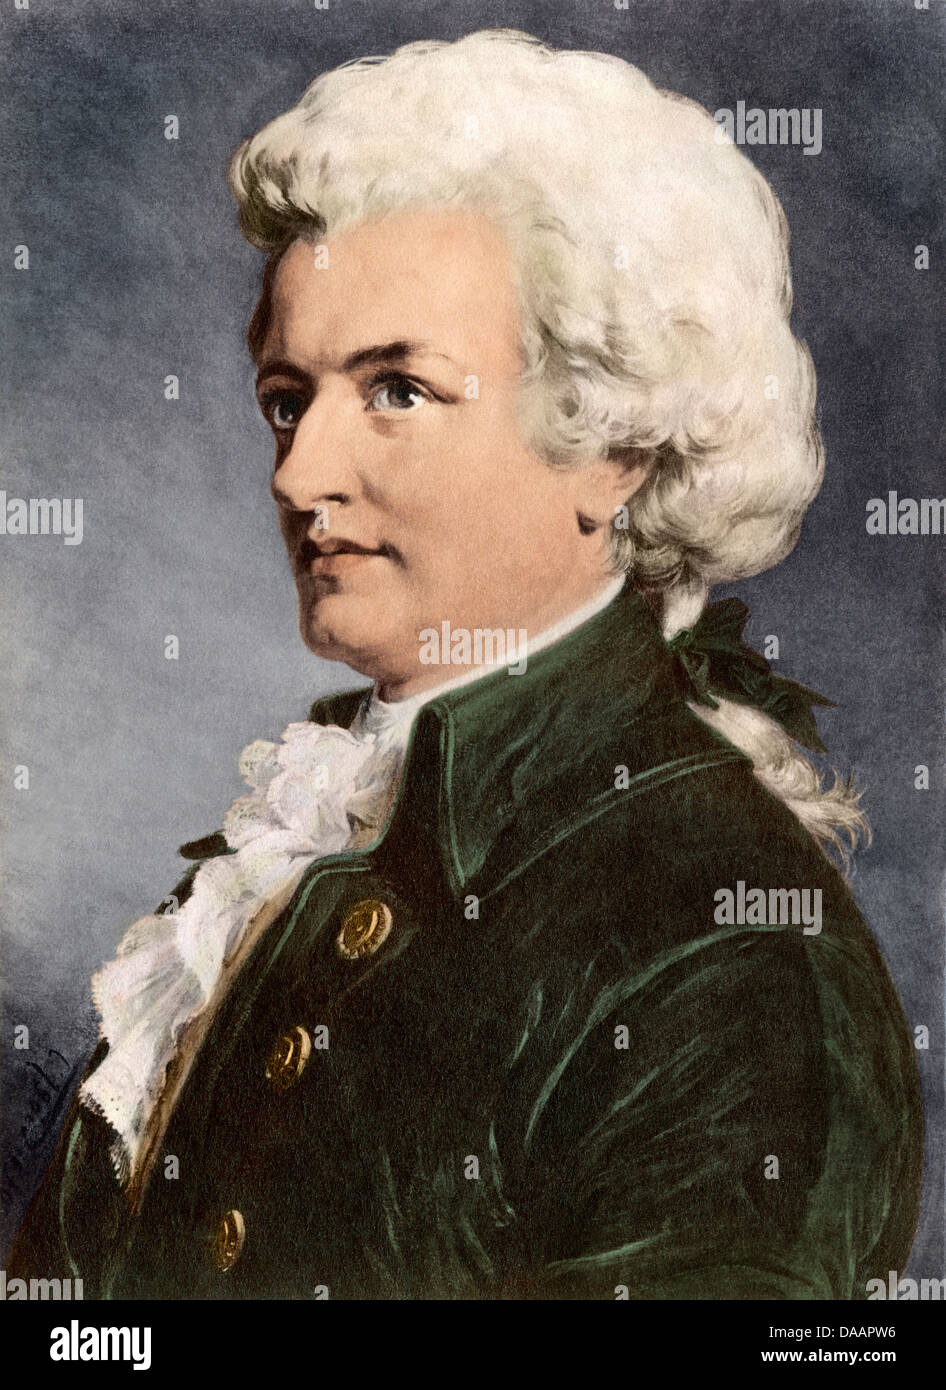 Portrait of Wolfgang Amadeus Mozart. Digitally colored photograph of a painting - Stock Image